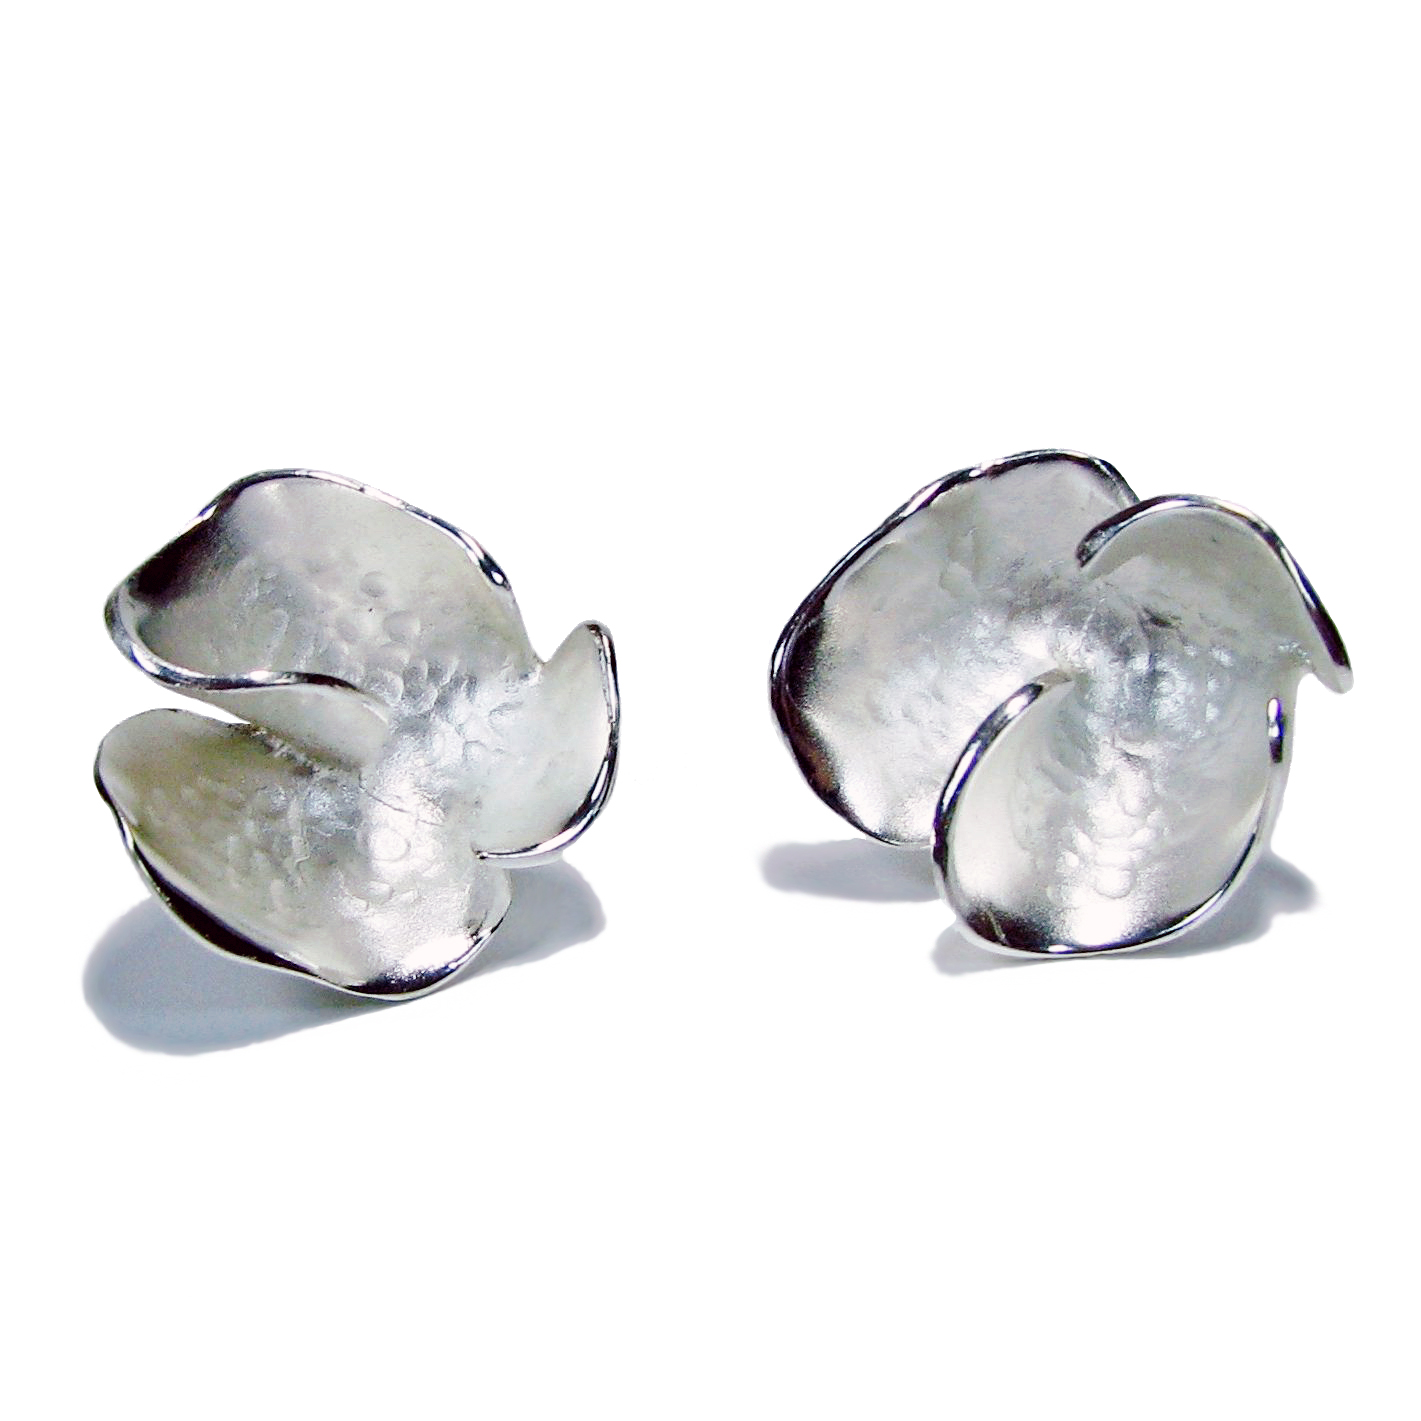 Charisma Large Silver Flower Earrings